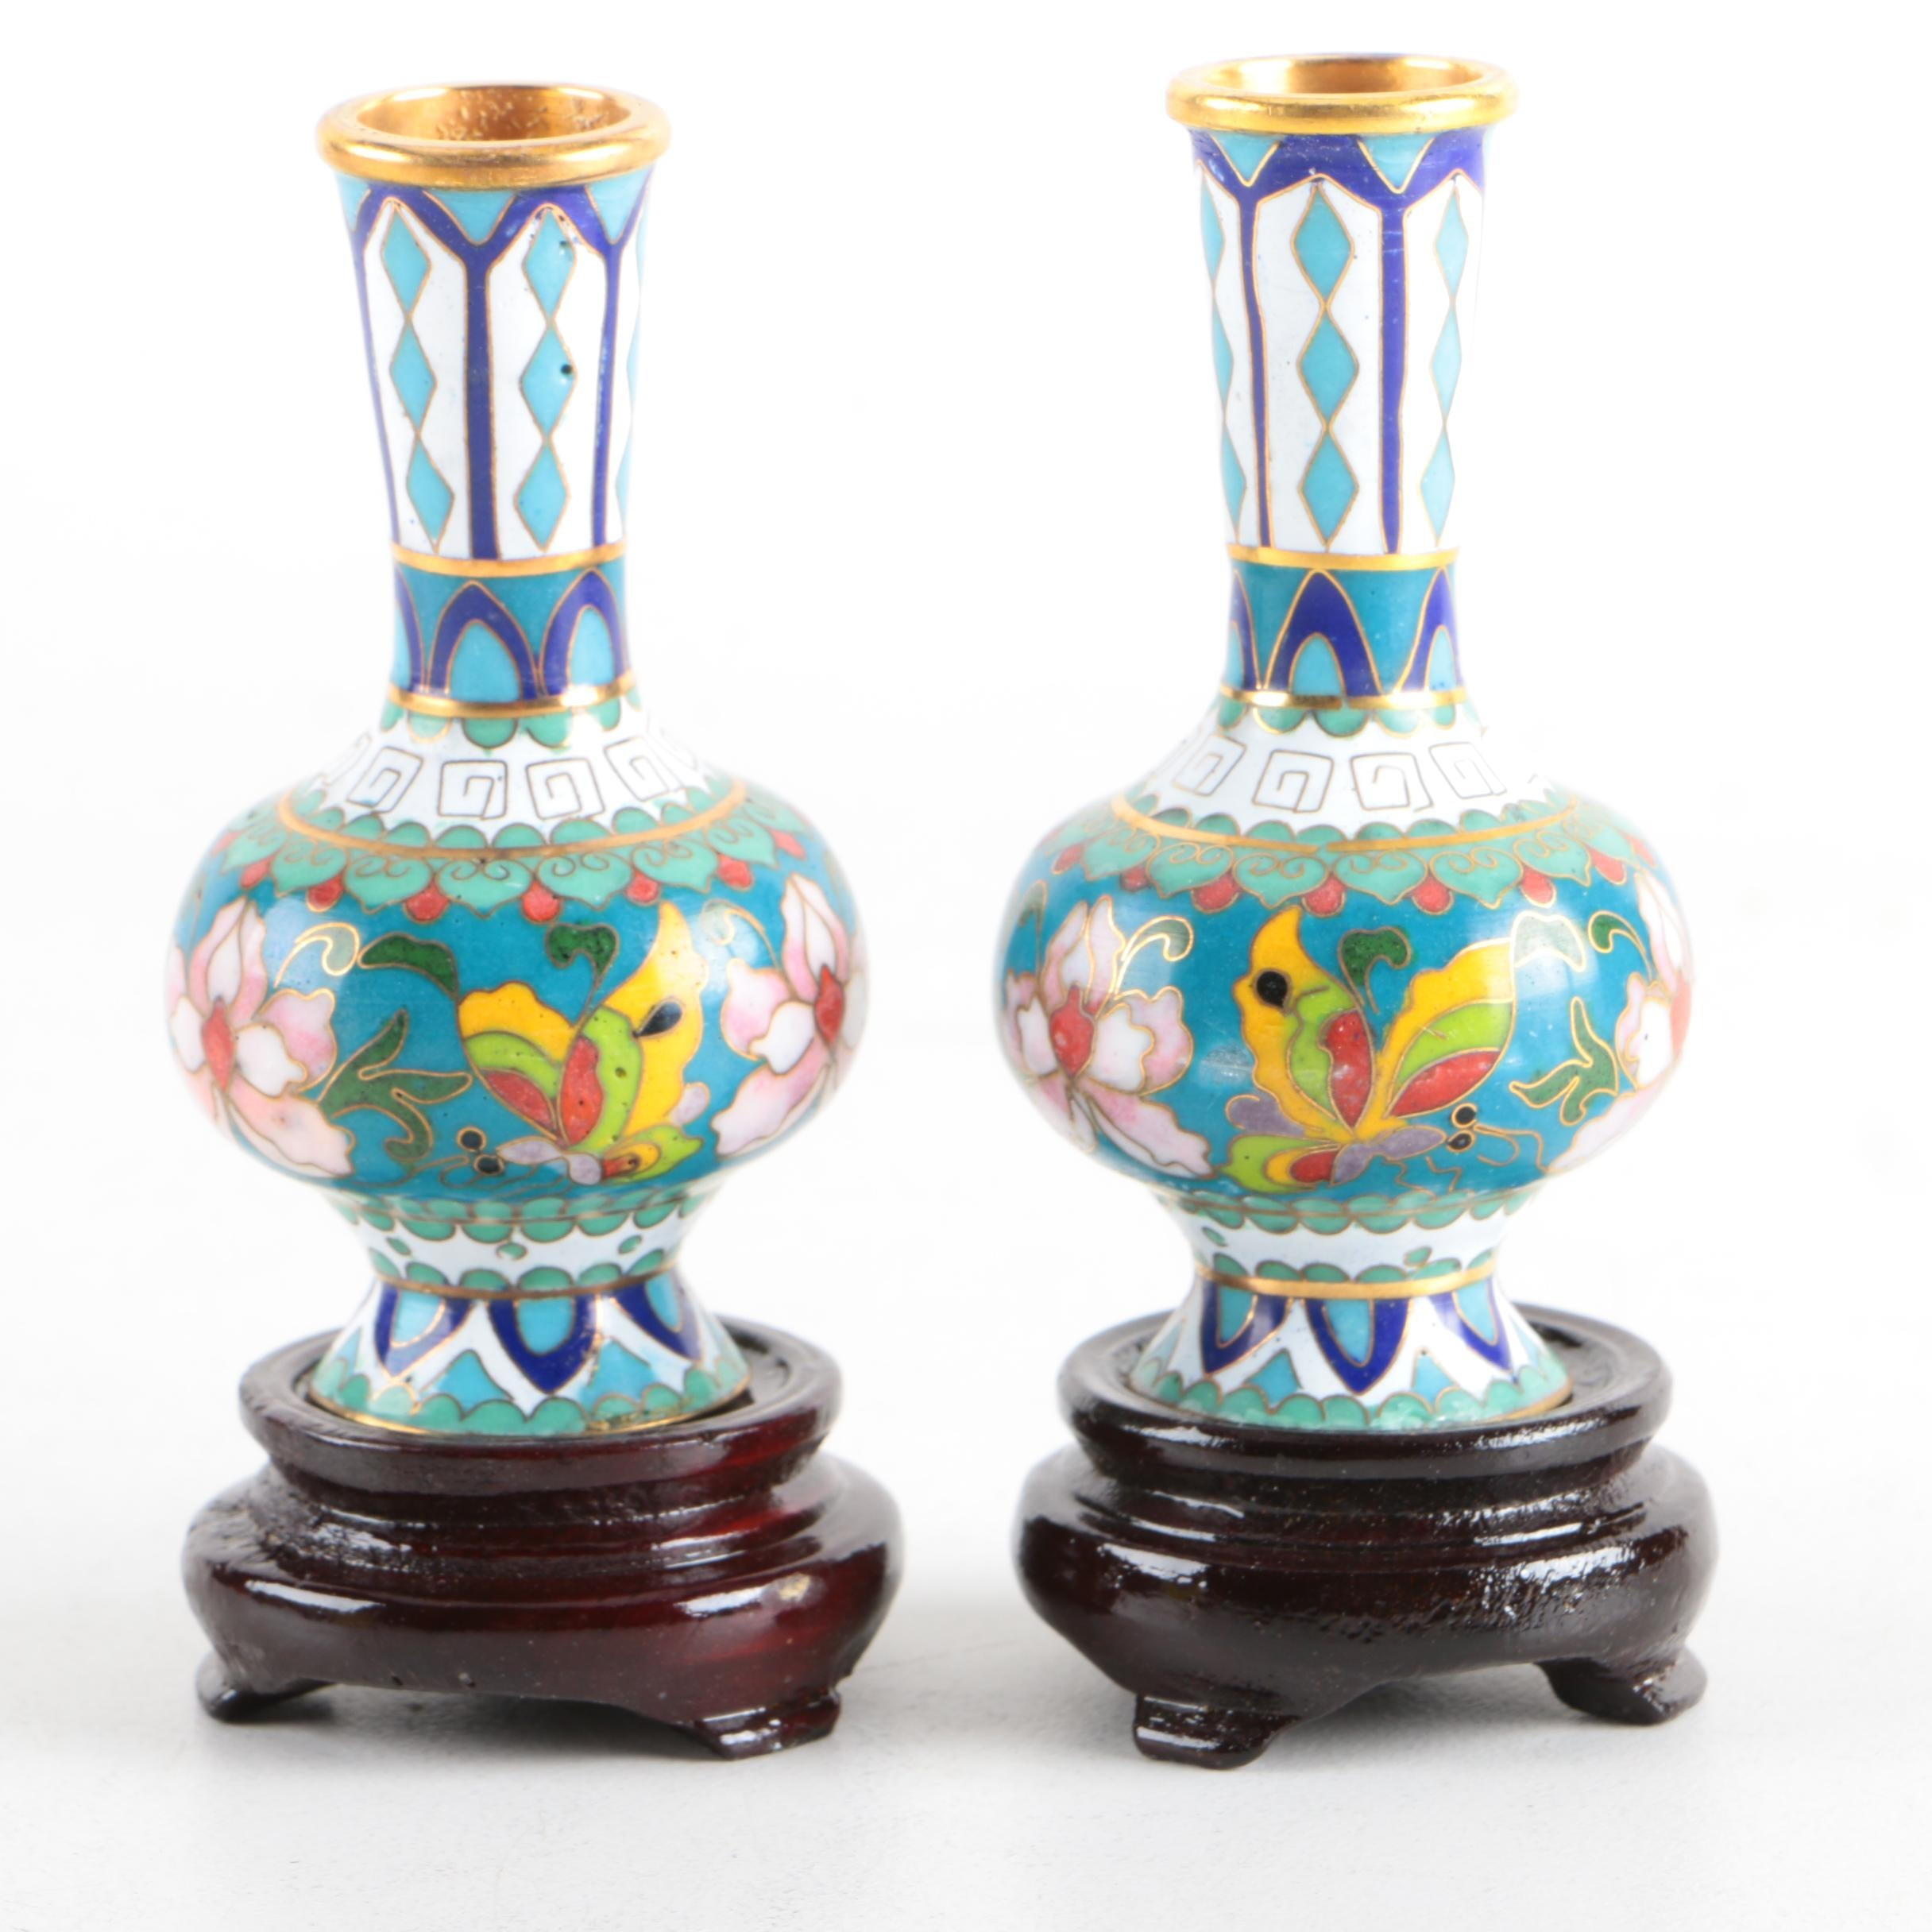 Pair of Chinese Cloisonné Vases with Wooden Stands